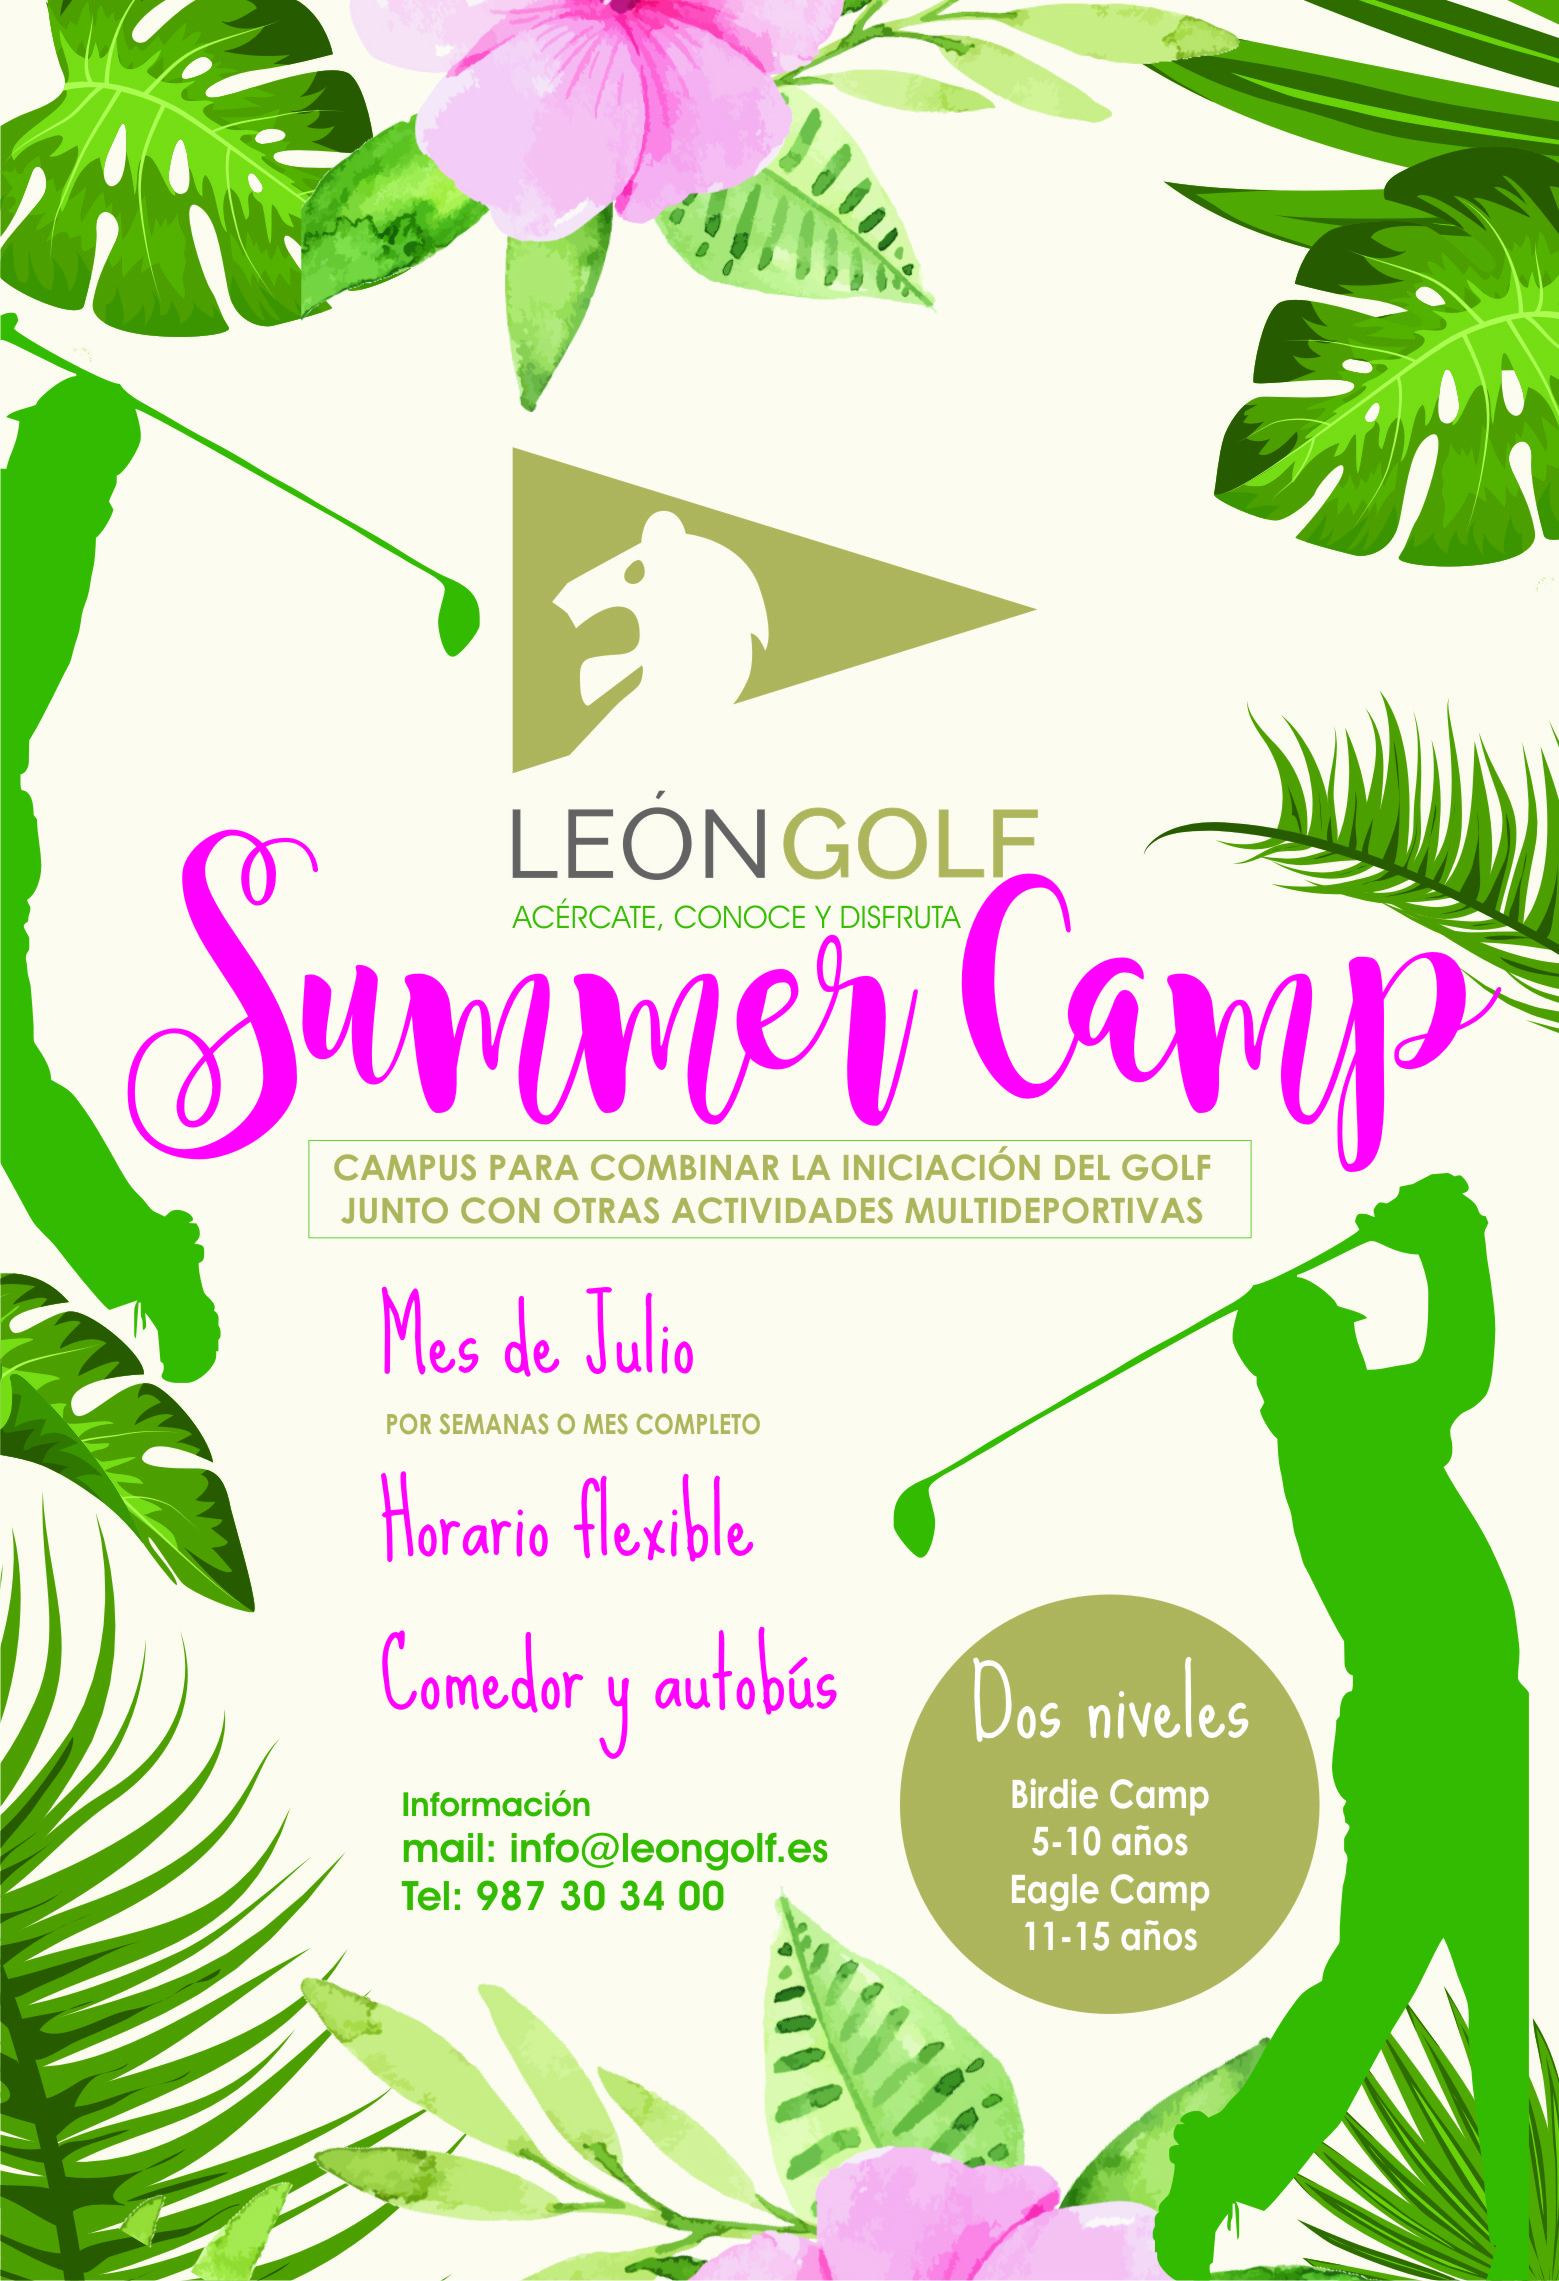 SUMMER CAMP LEÓN GOLF